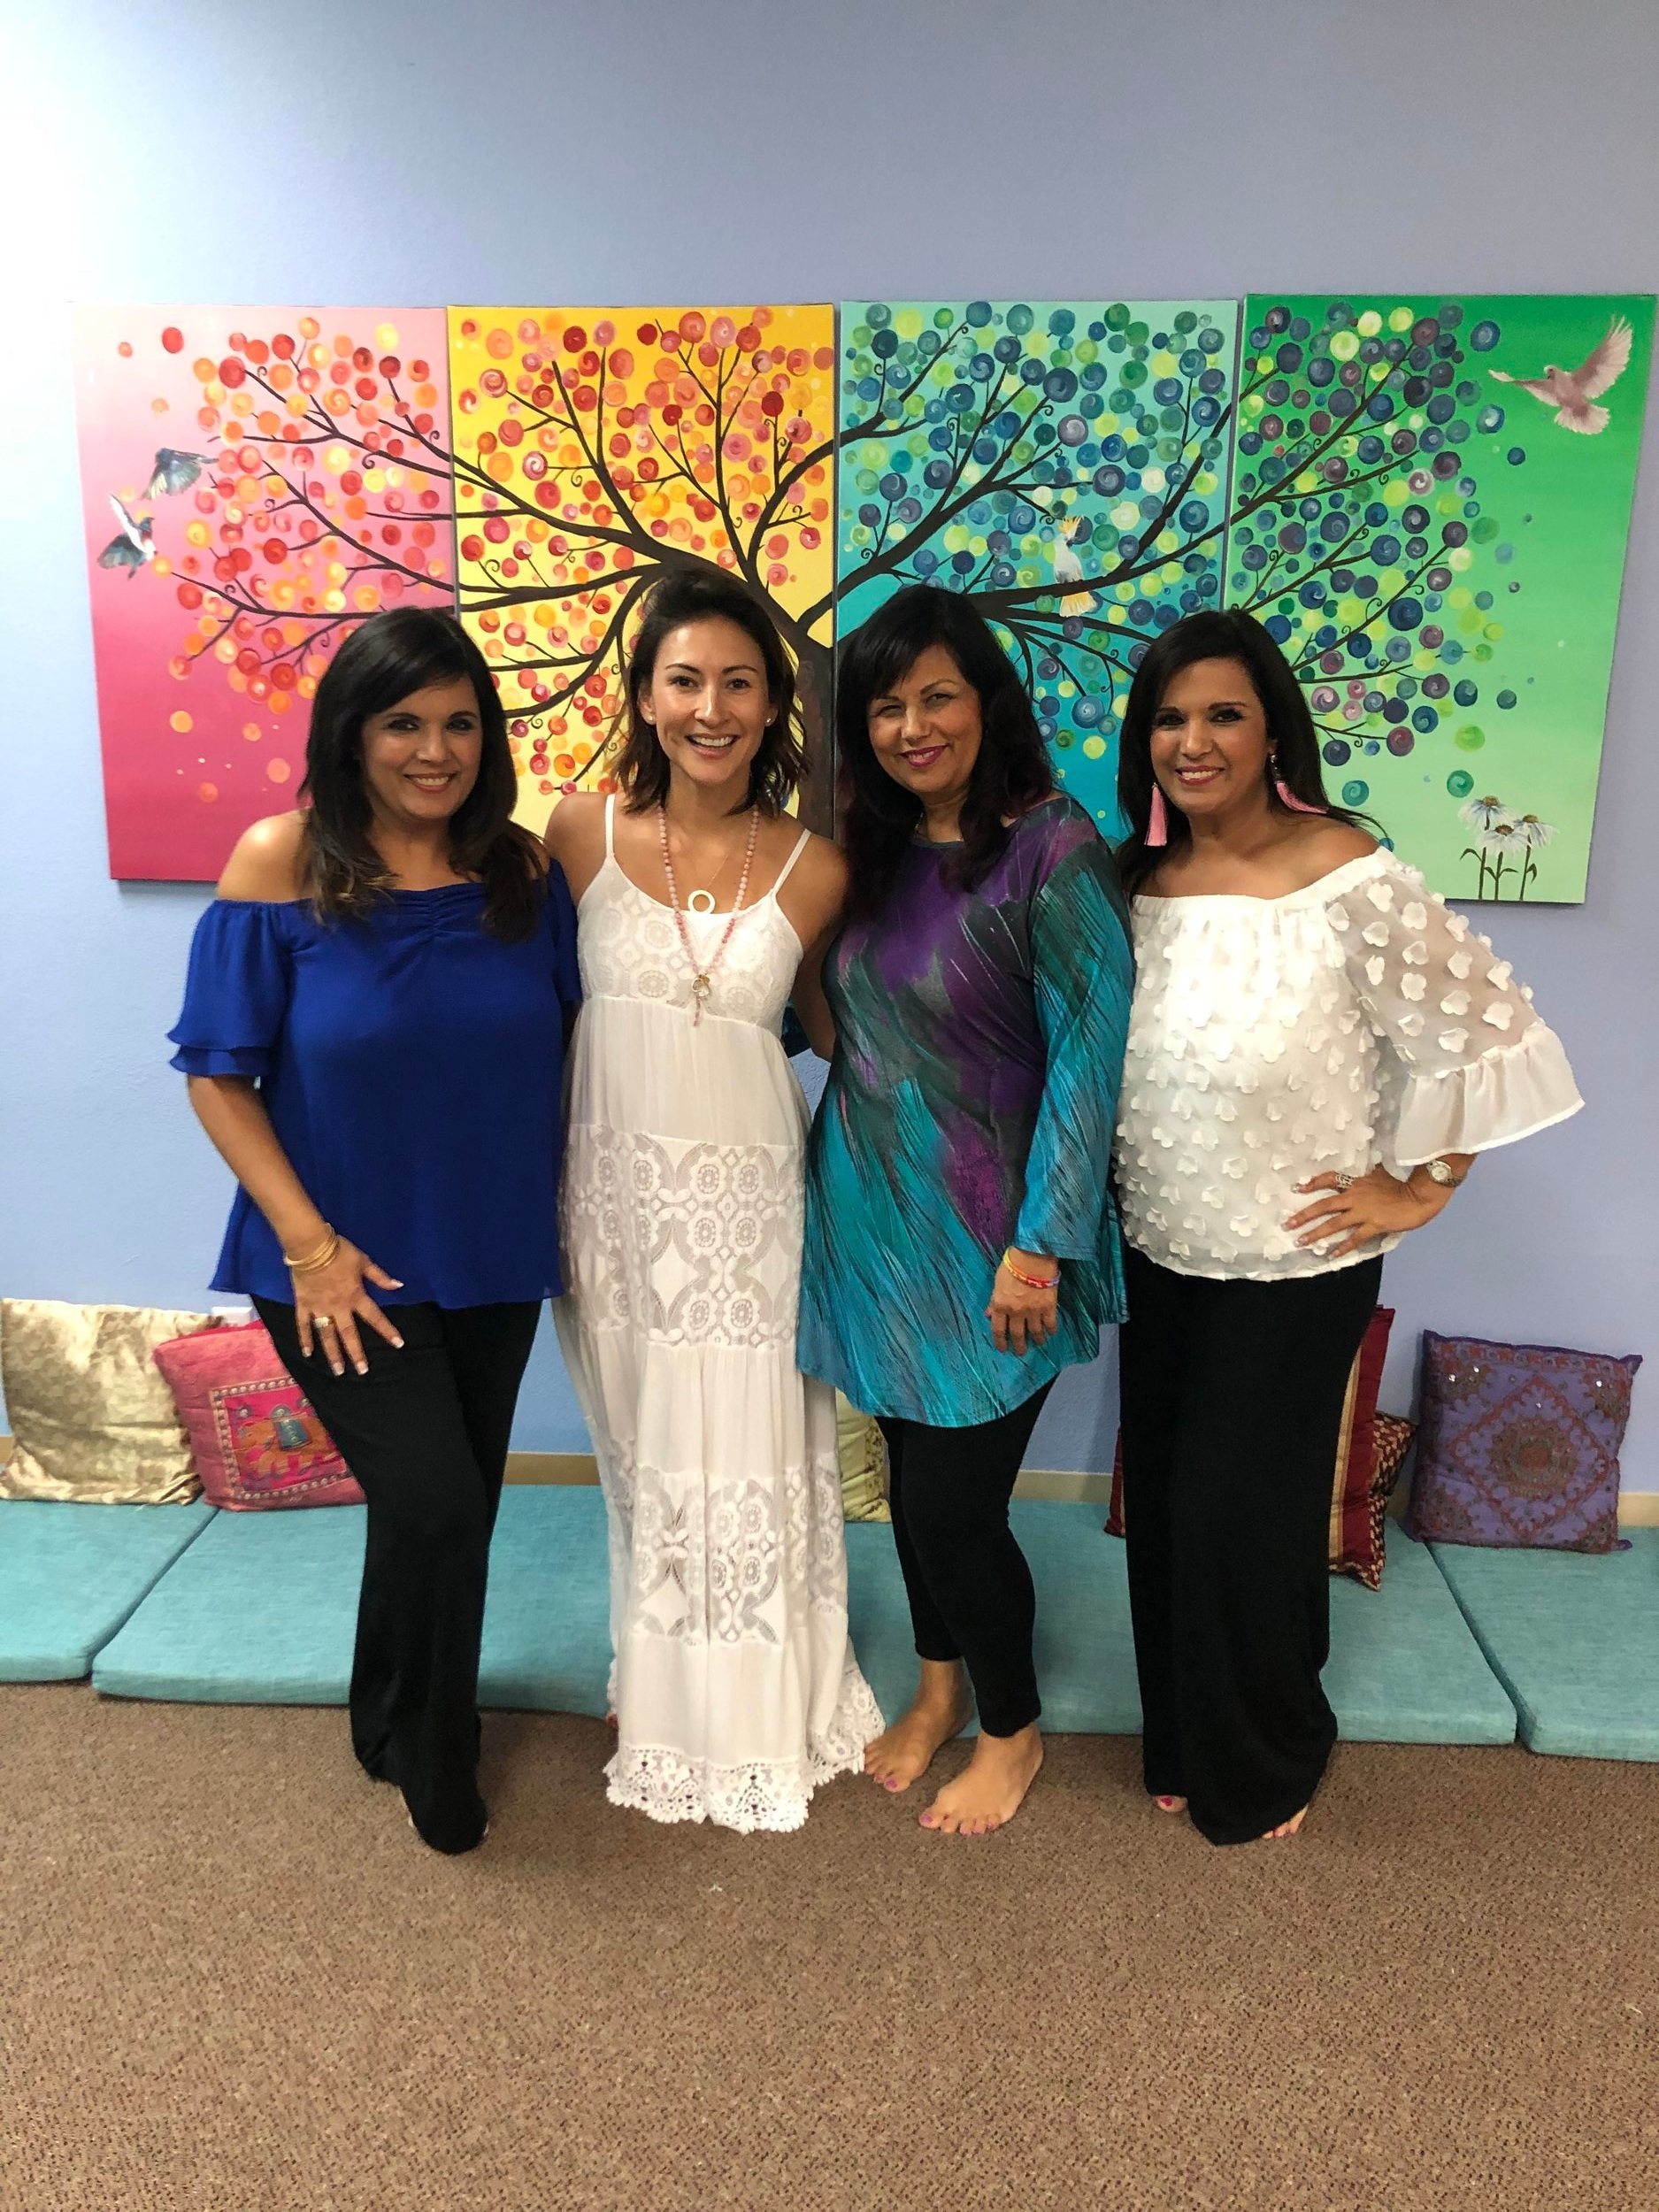 Malka, Me, Saju and Alka - Three of the sisters who founded Infinite Love